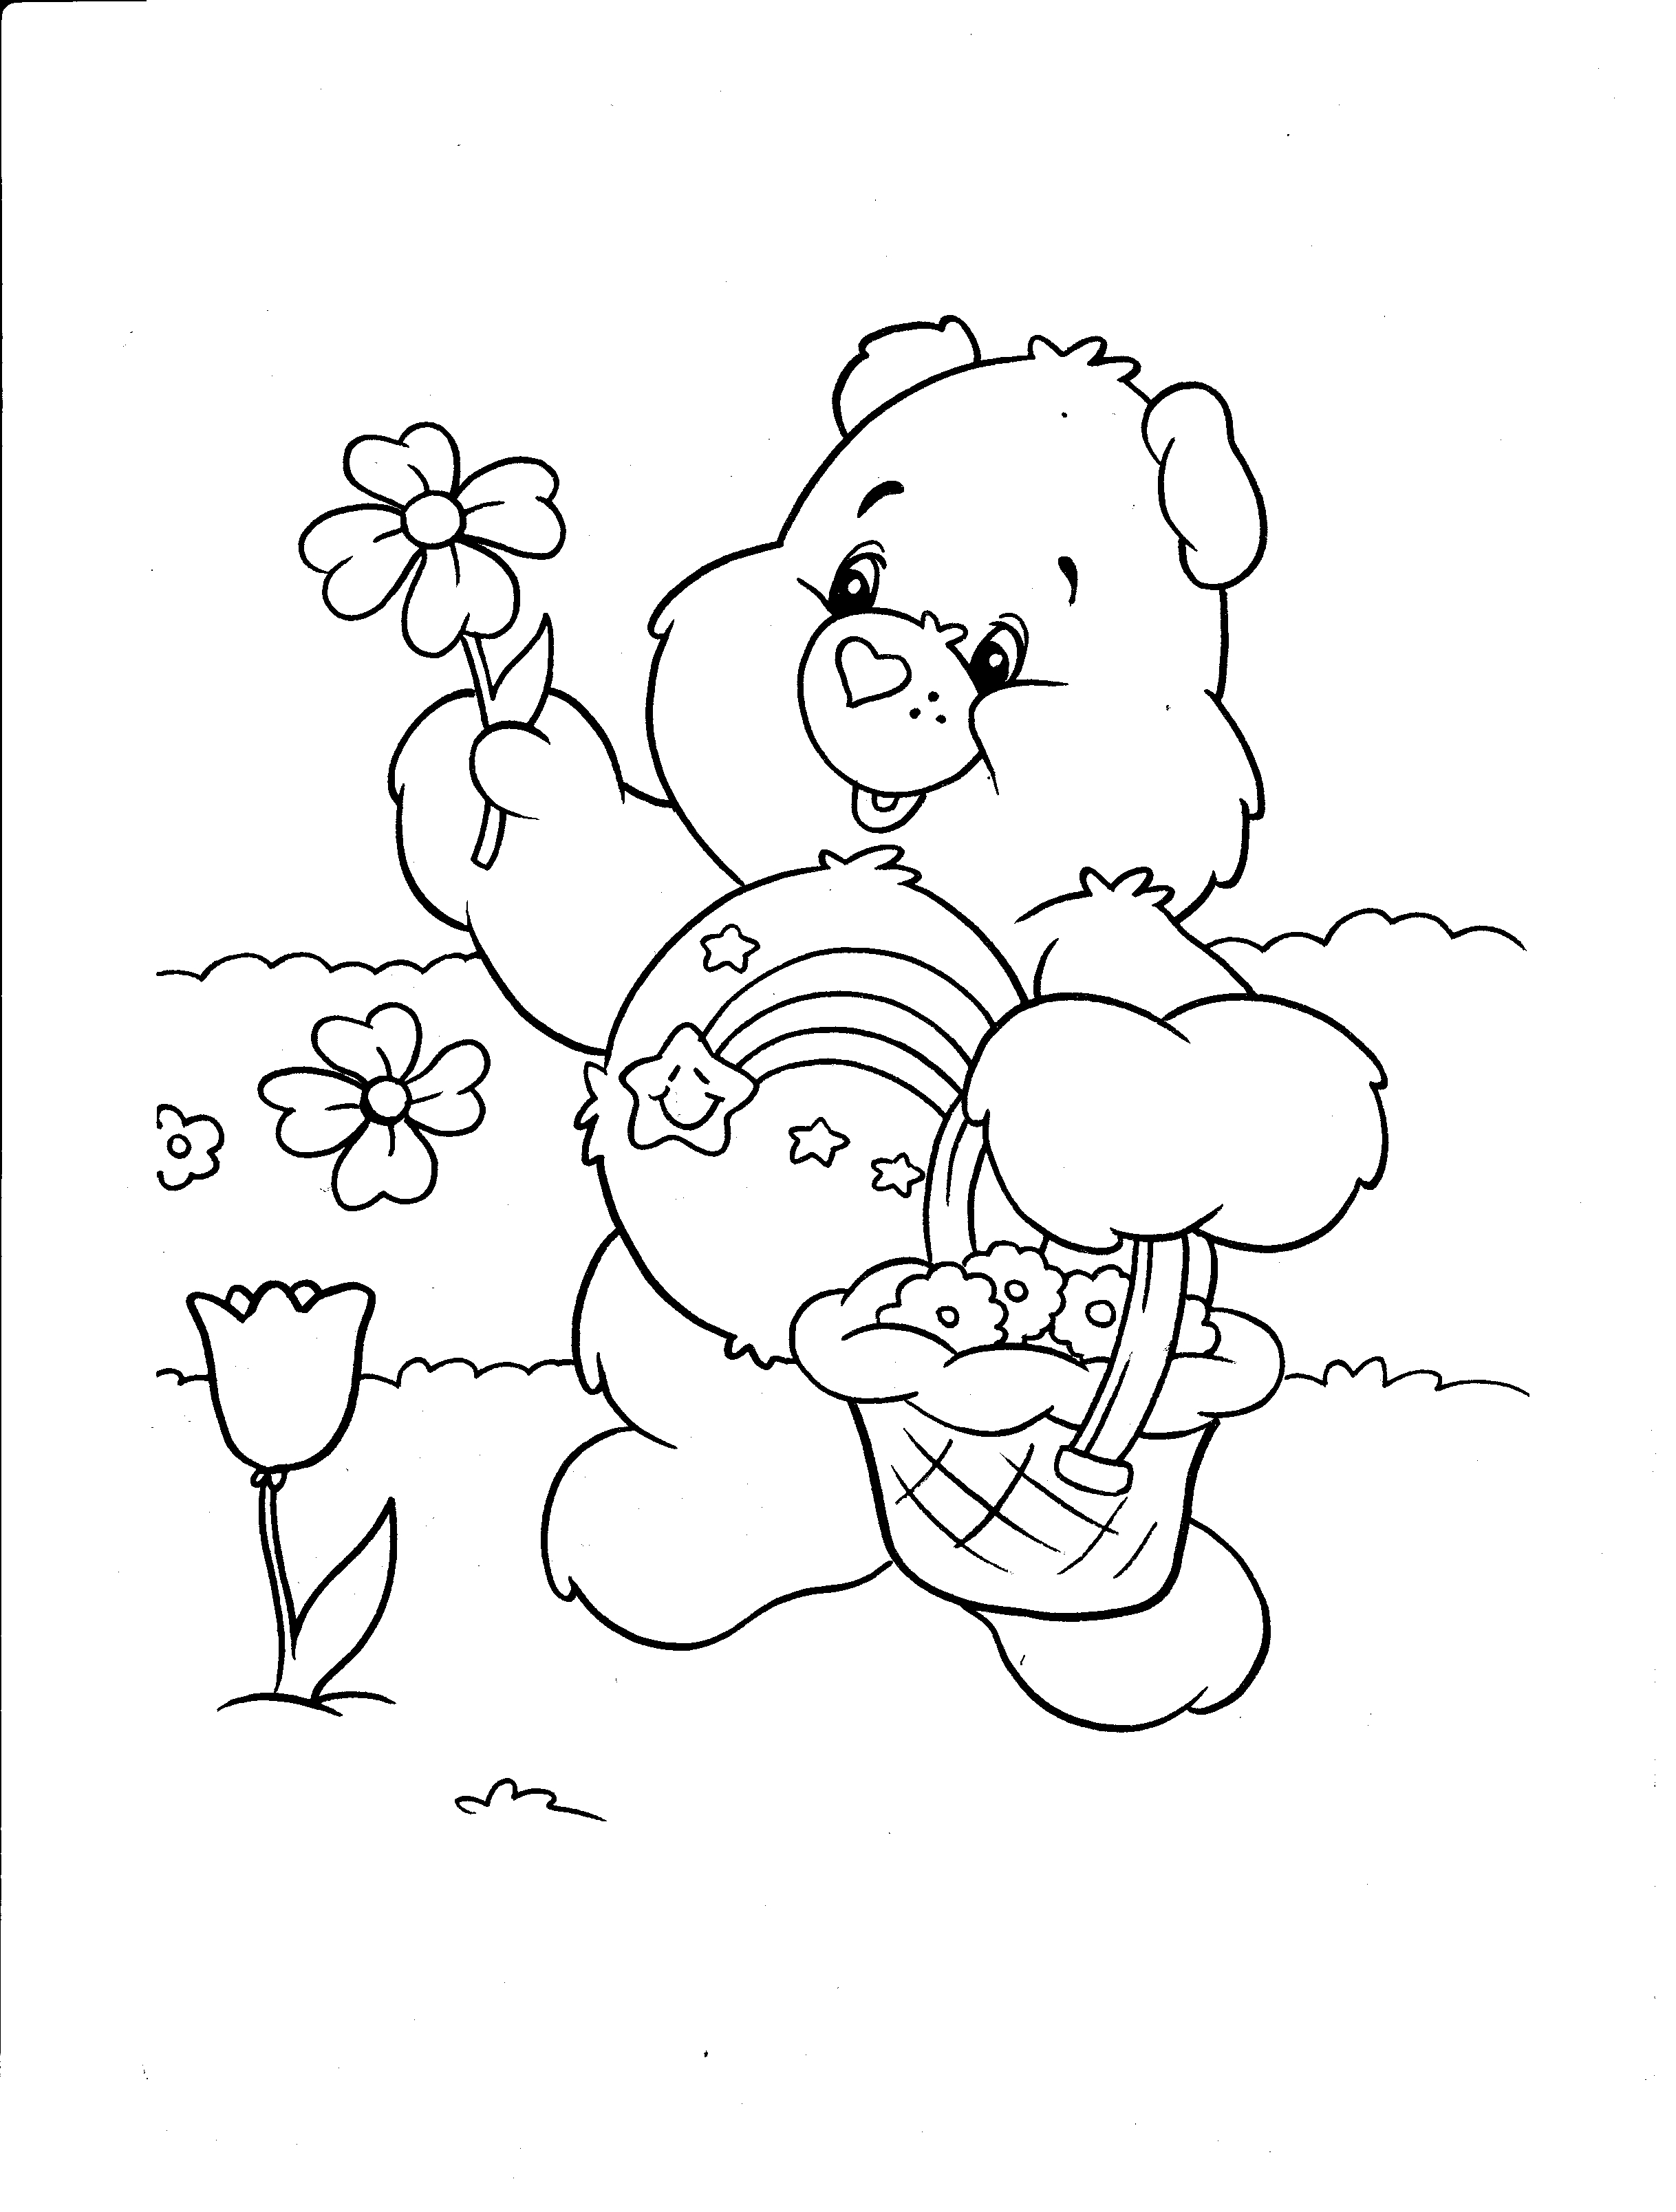 free coloring pages bears free printable bear coloring pages for kids free coloring pages bears 1 1